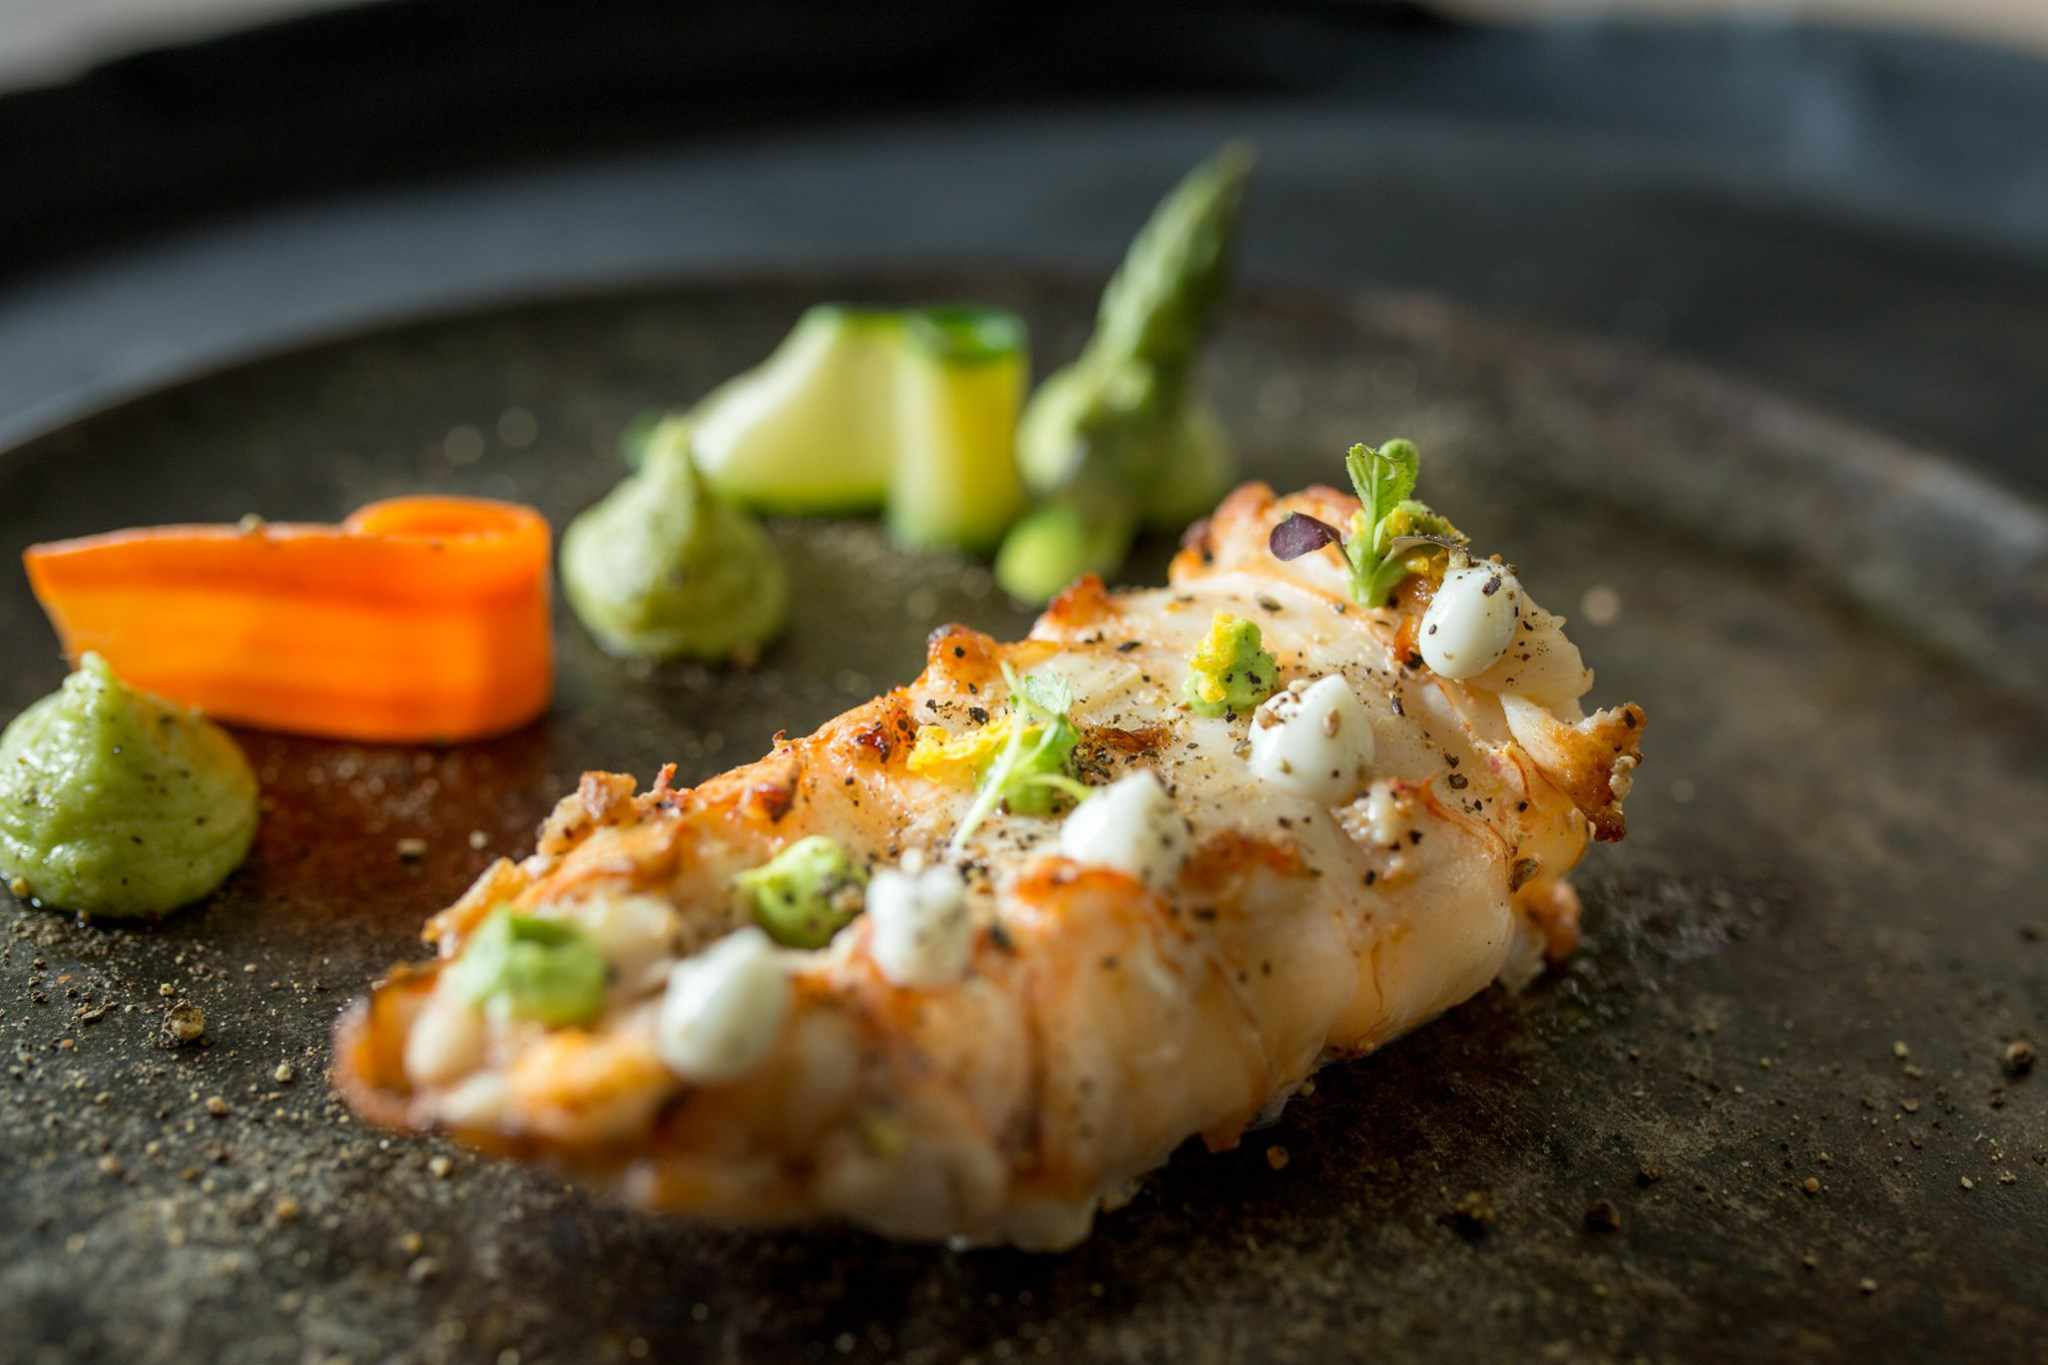 Shelled lobster tail with garnishes on a dark plate